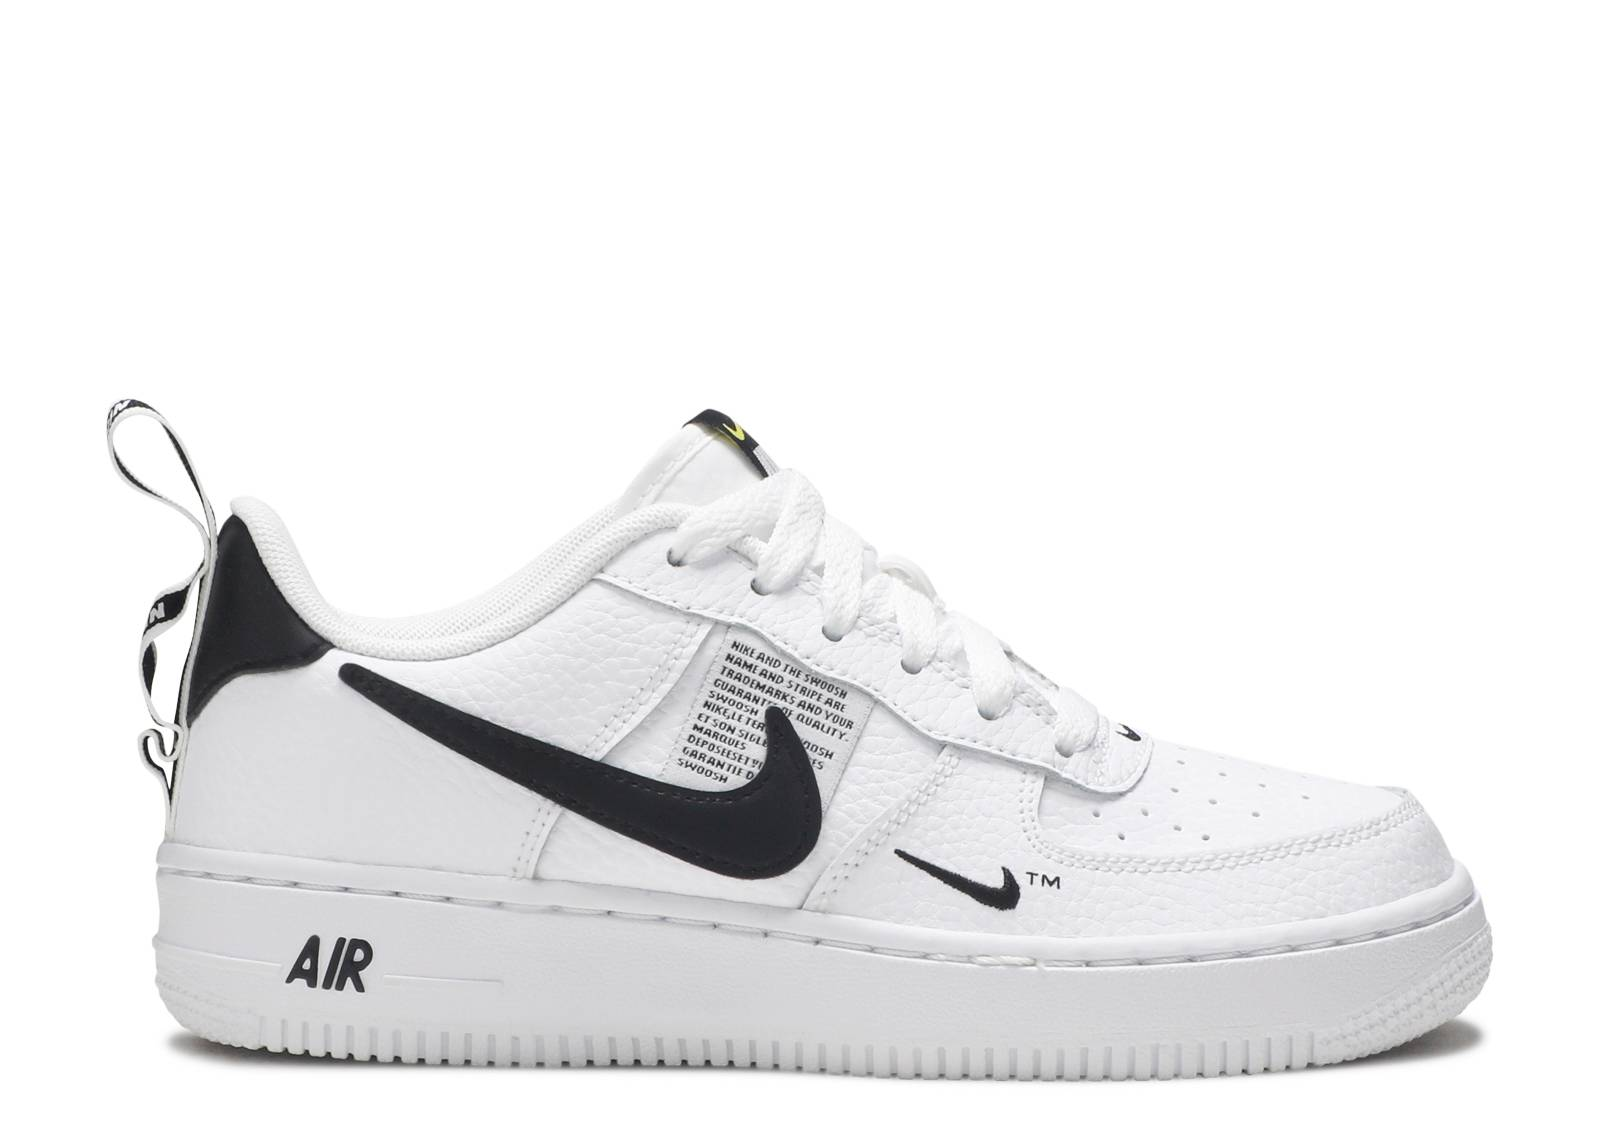 Nike Air Force 1 Lv8 Utility Low Top Sneakers |